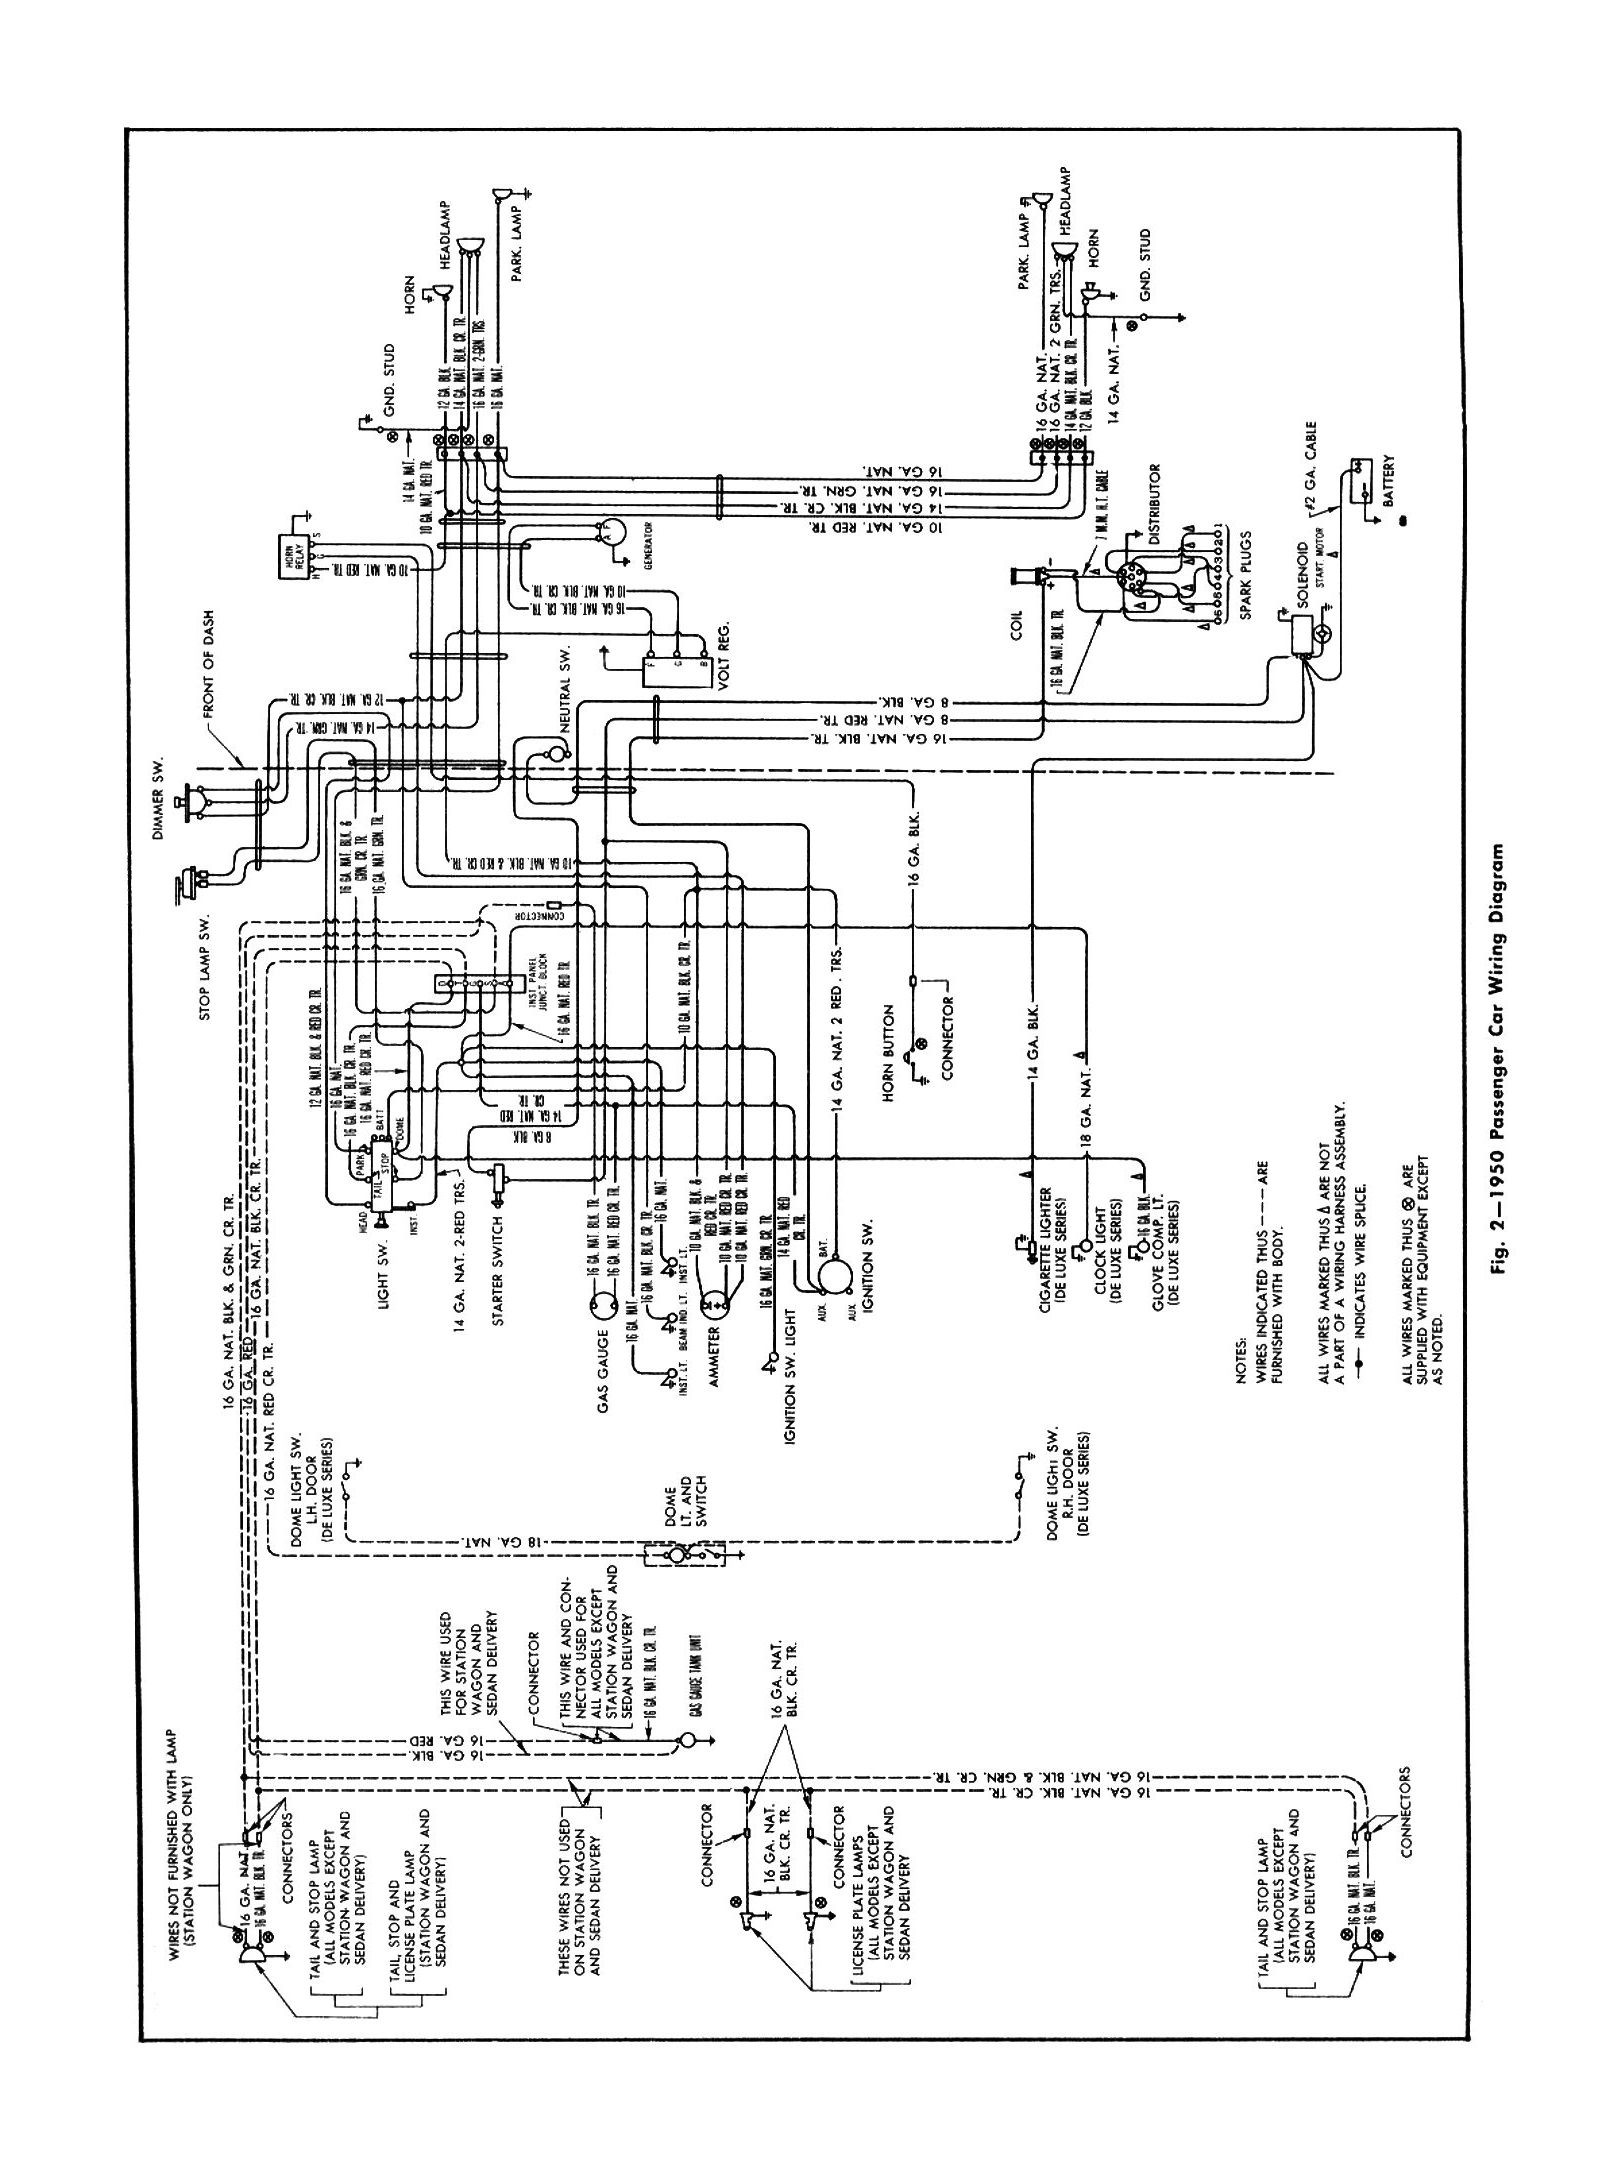 50car chevy wiring diagrams 1953 chevy bel air wiring diagram at reclaimingppi.co